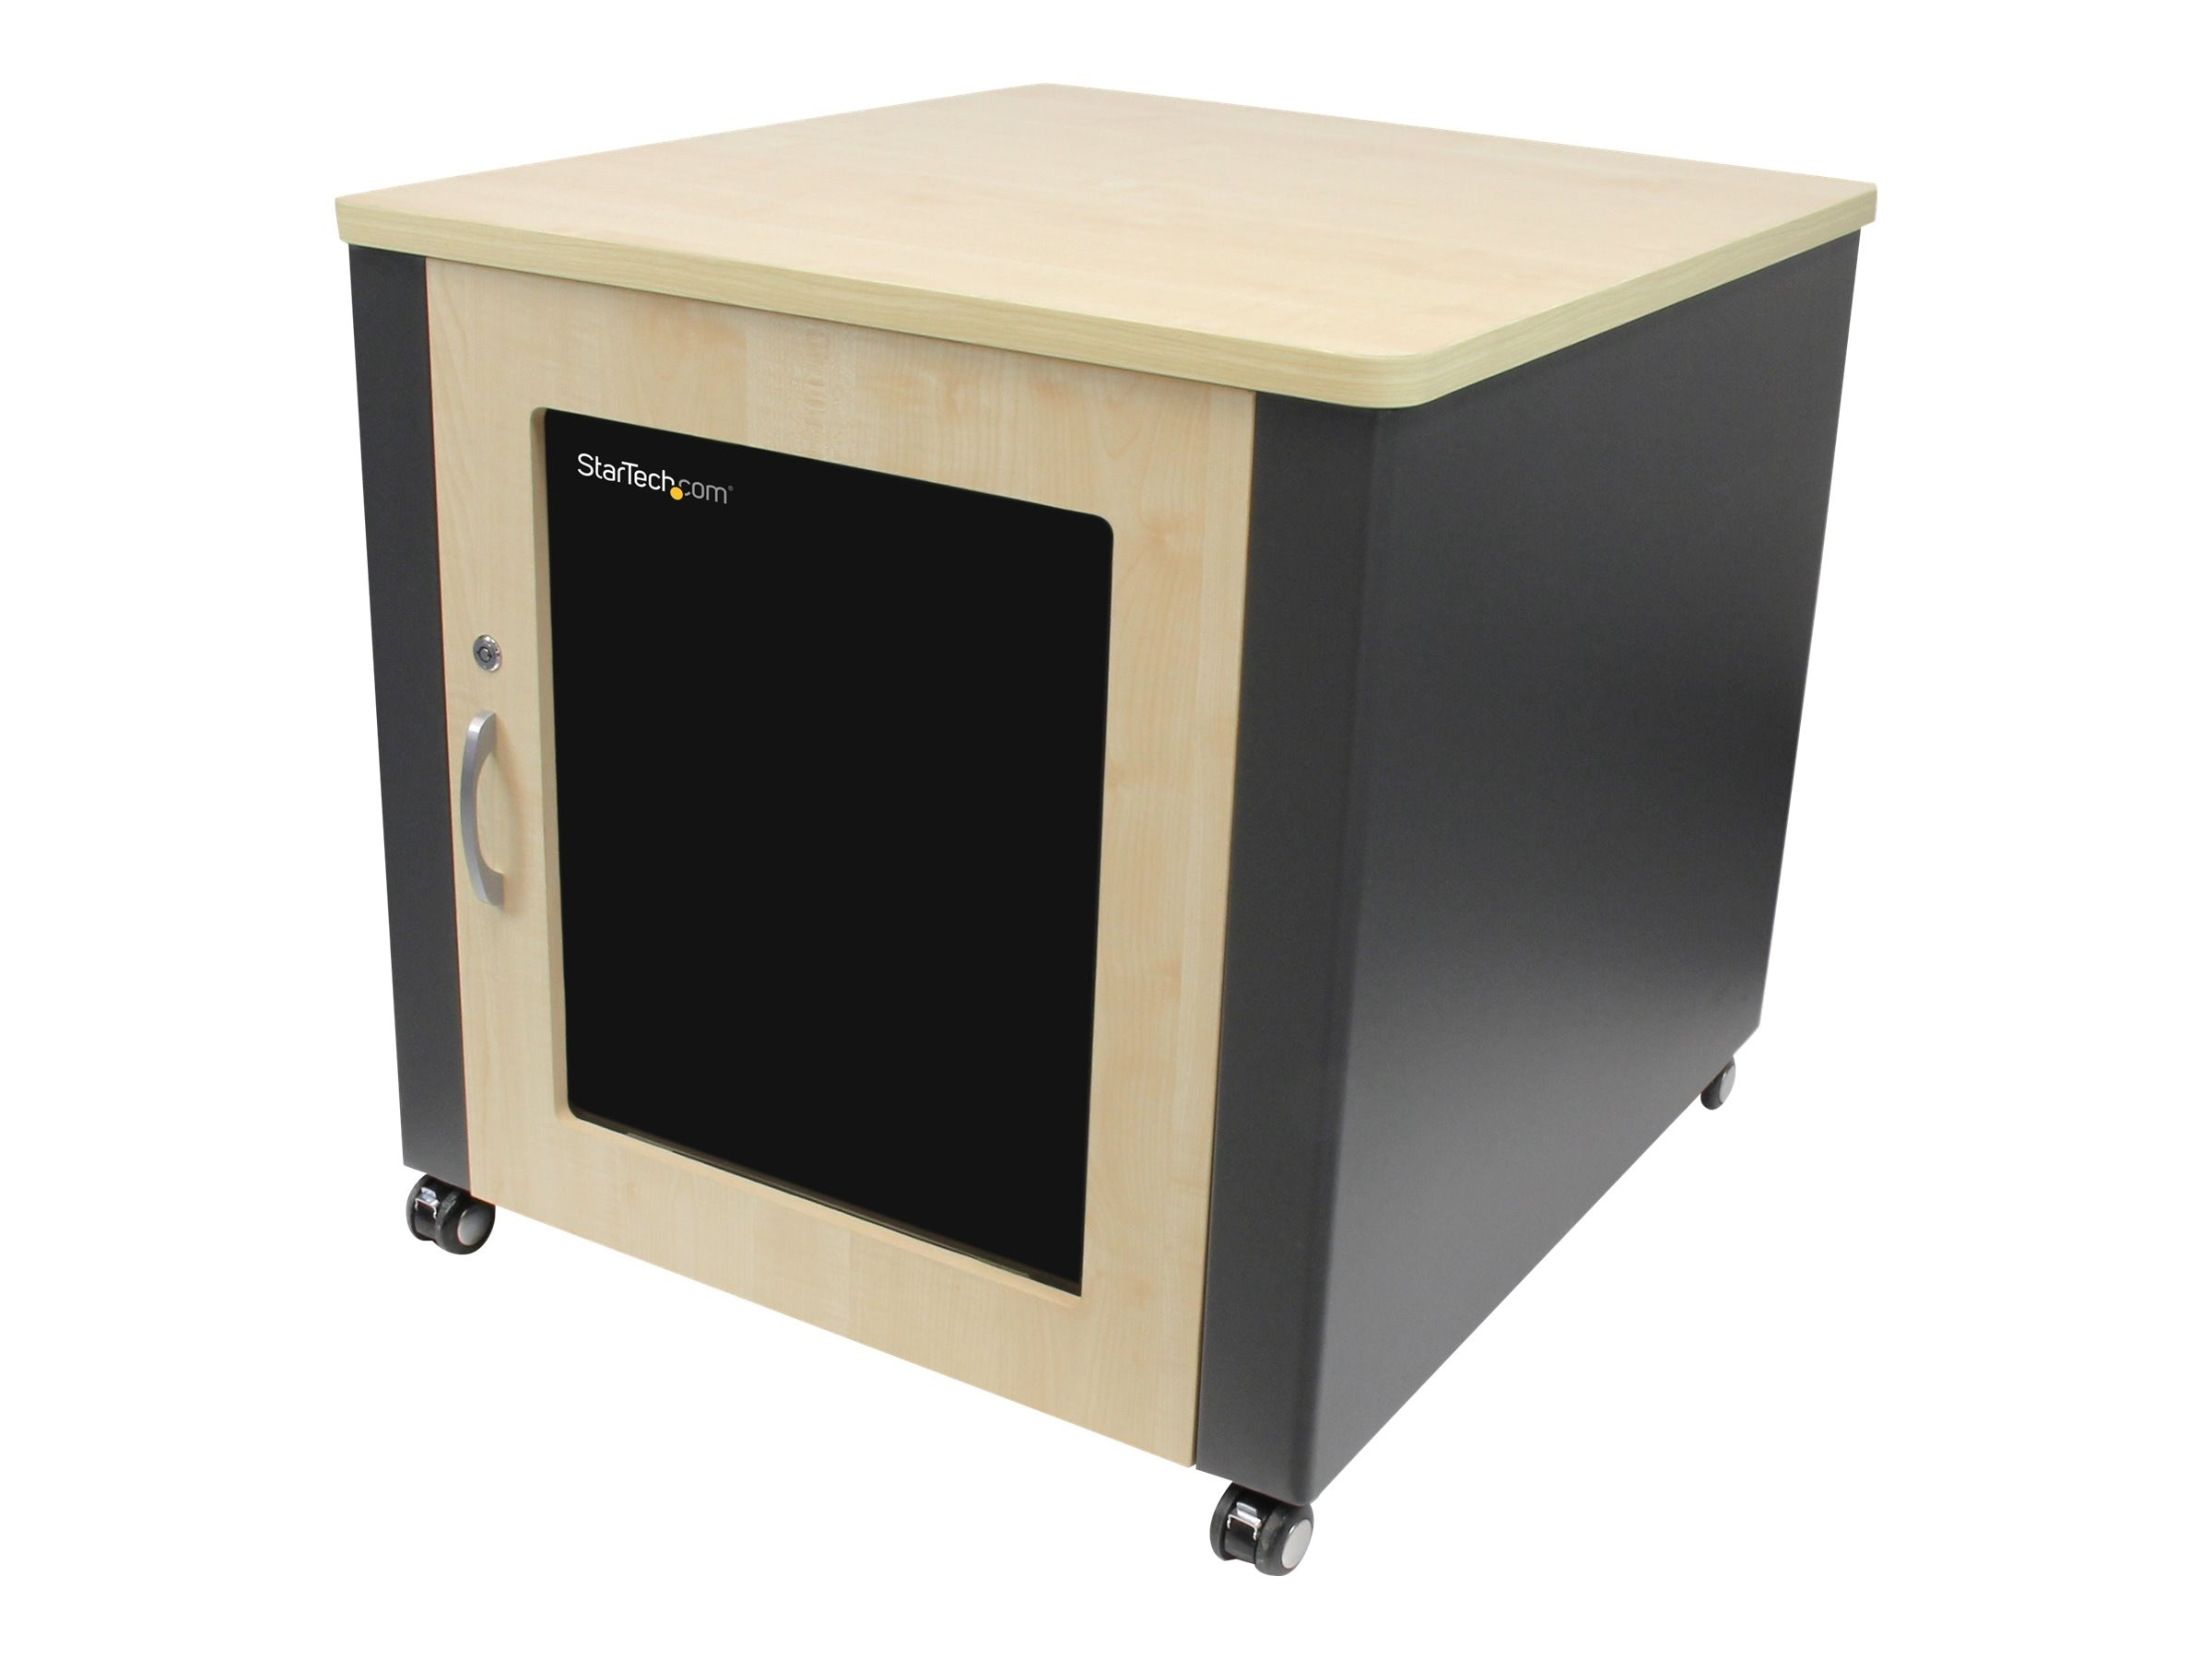 StarTech.com 12U Soundproof Server Rack Acoustic Cabinet with Casters